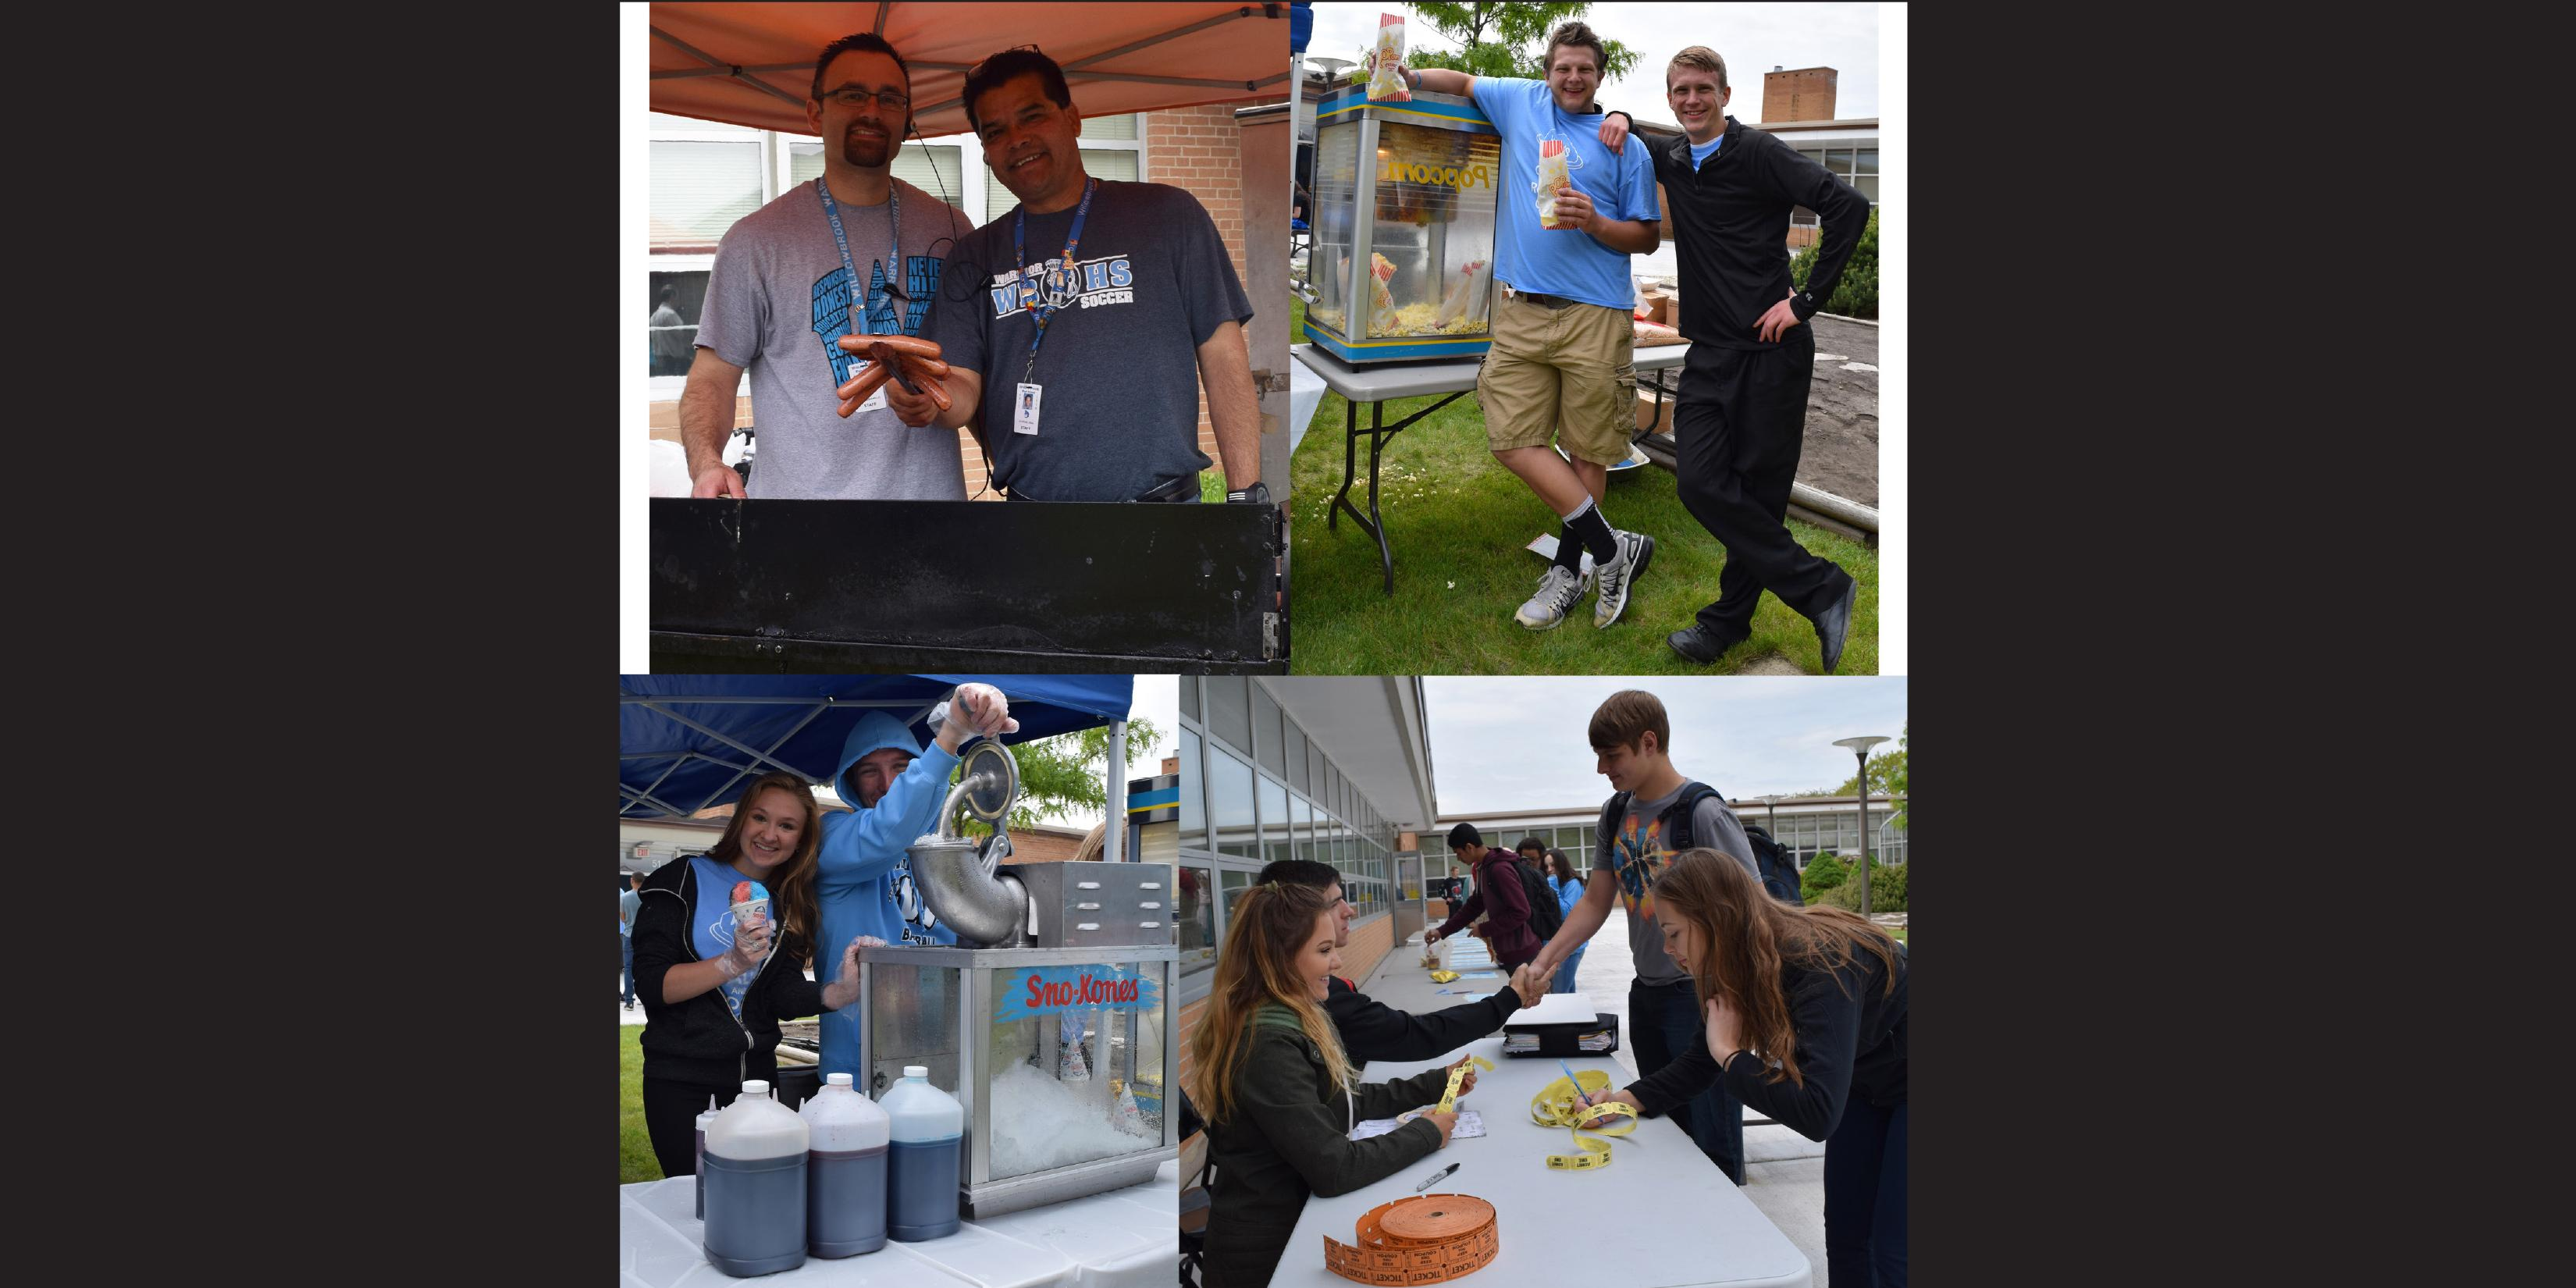 Willowbrook PBIS team hosts annual end-of-year barbecue